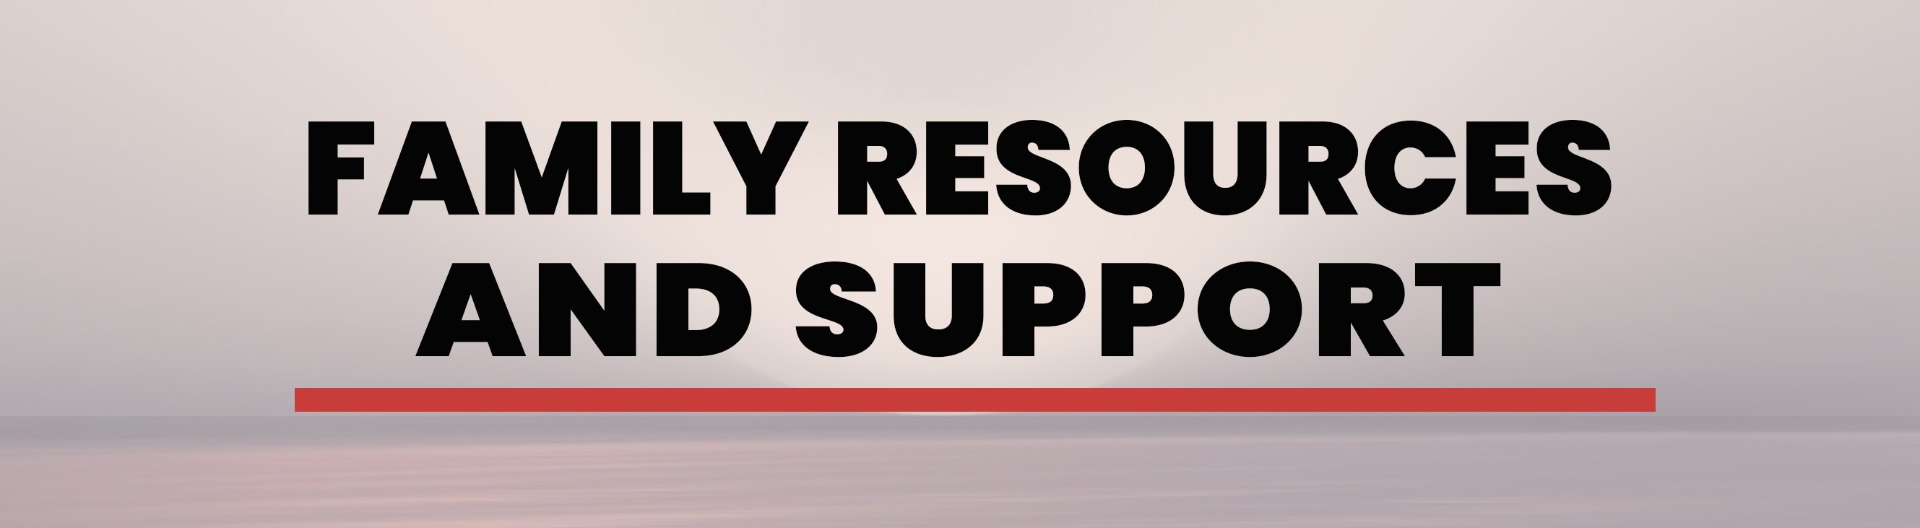 Family Resources and Support